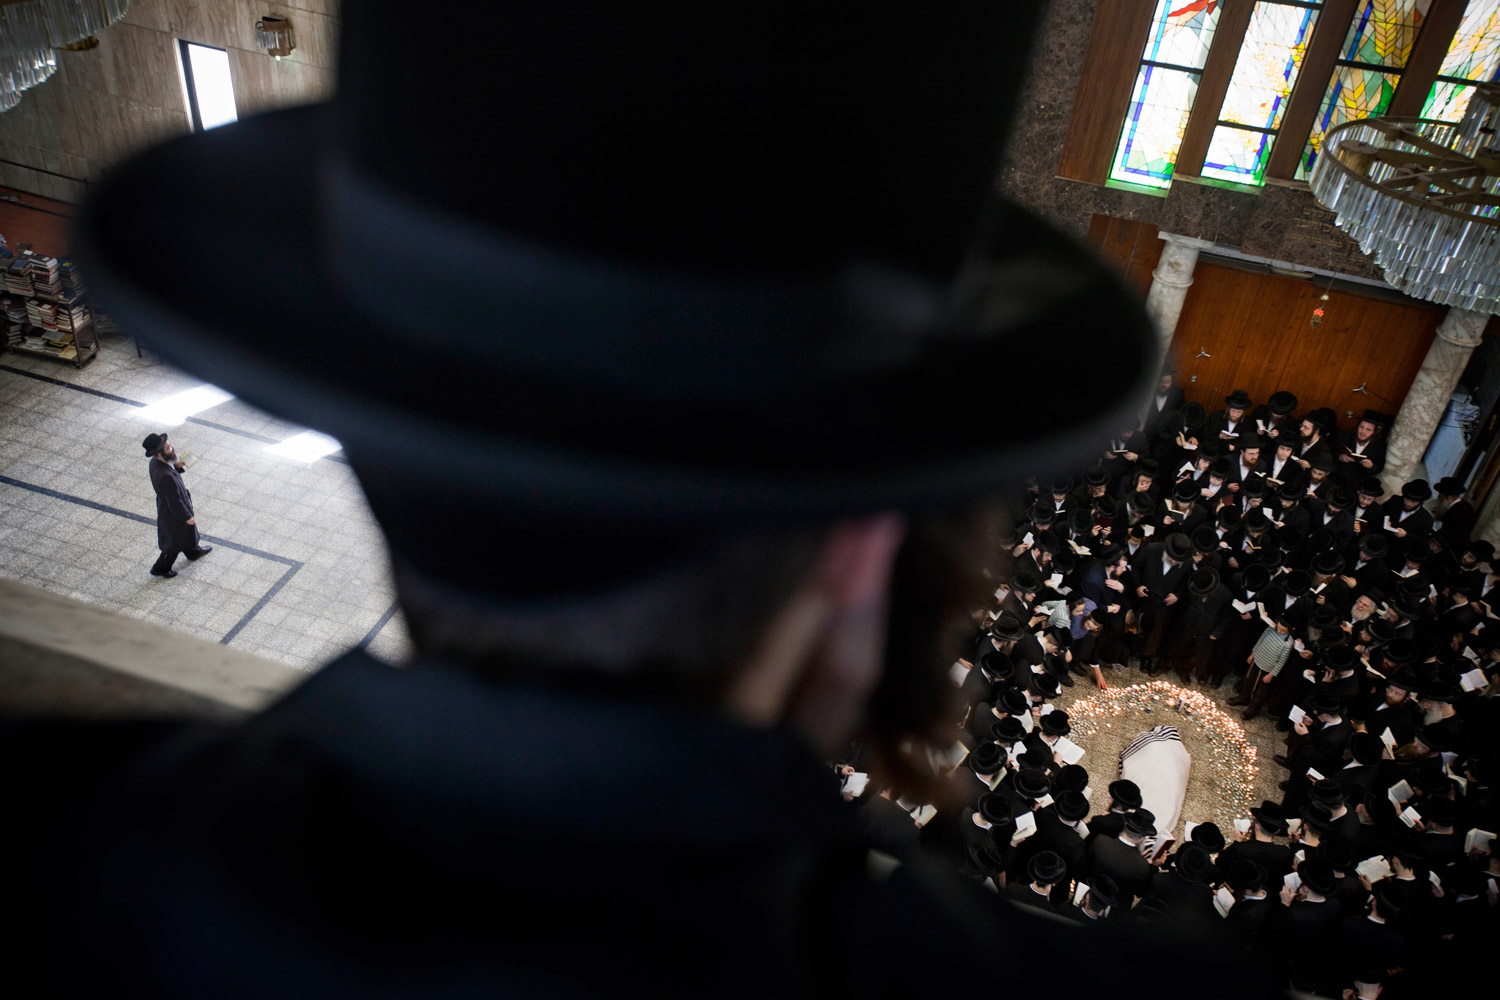 March 14, 2012. Ultra-Orthodox Jews gather around the body of Rabbi Moshe Yehoshua Hager, leader of the Hassidic sect Vizhnitz in Israel, at the Vizhnitz Synagogue during his funeral procession in Bnei Brak, Israel, Wednesday, March 14, 2012.